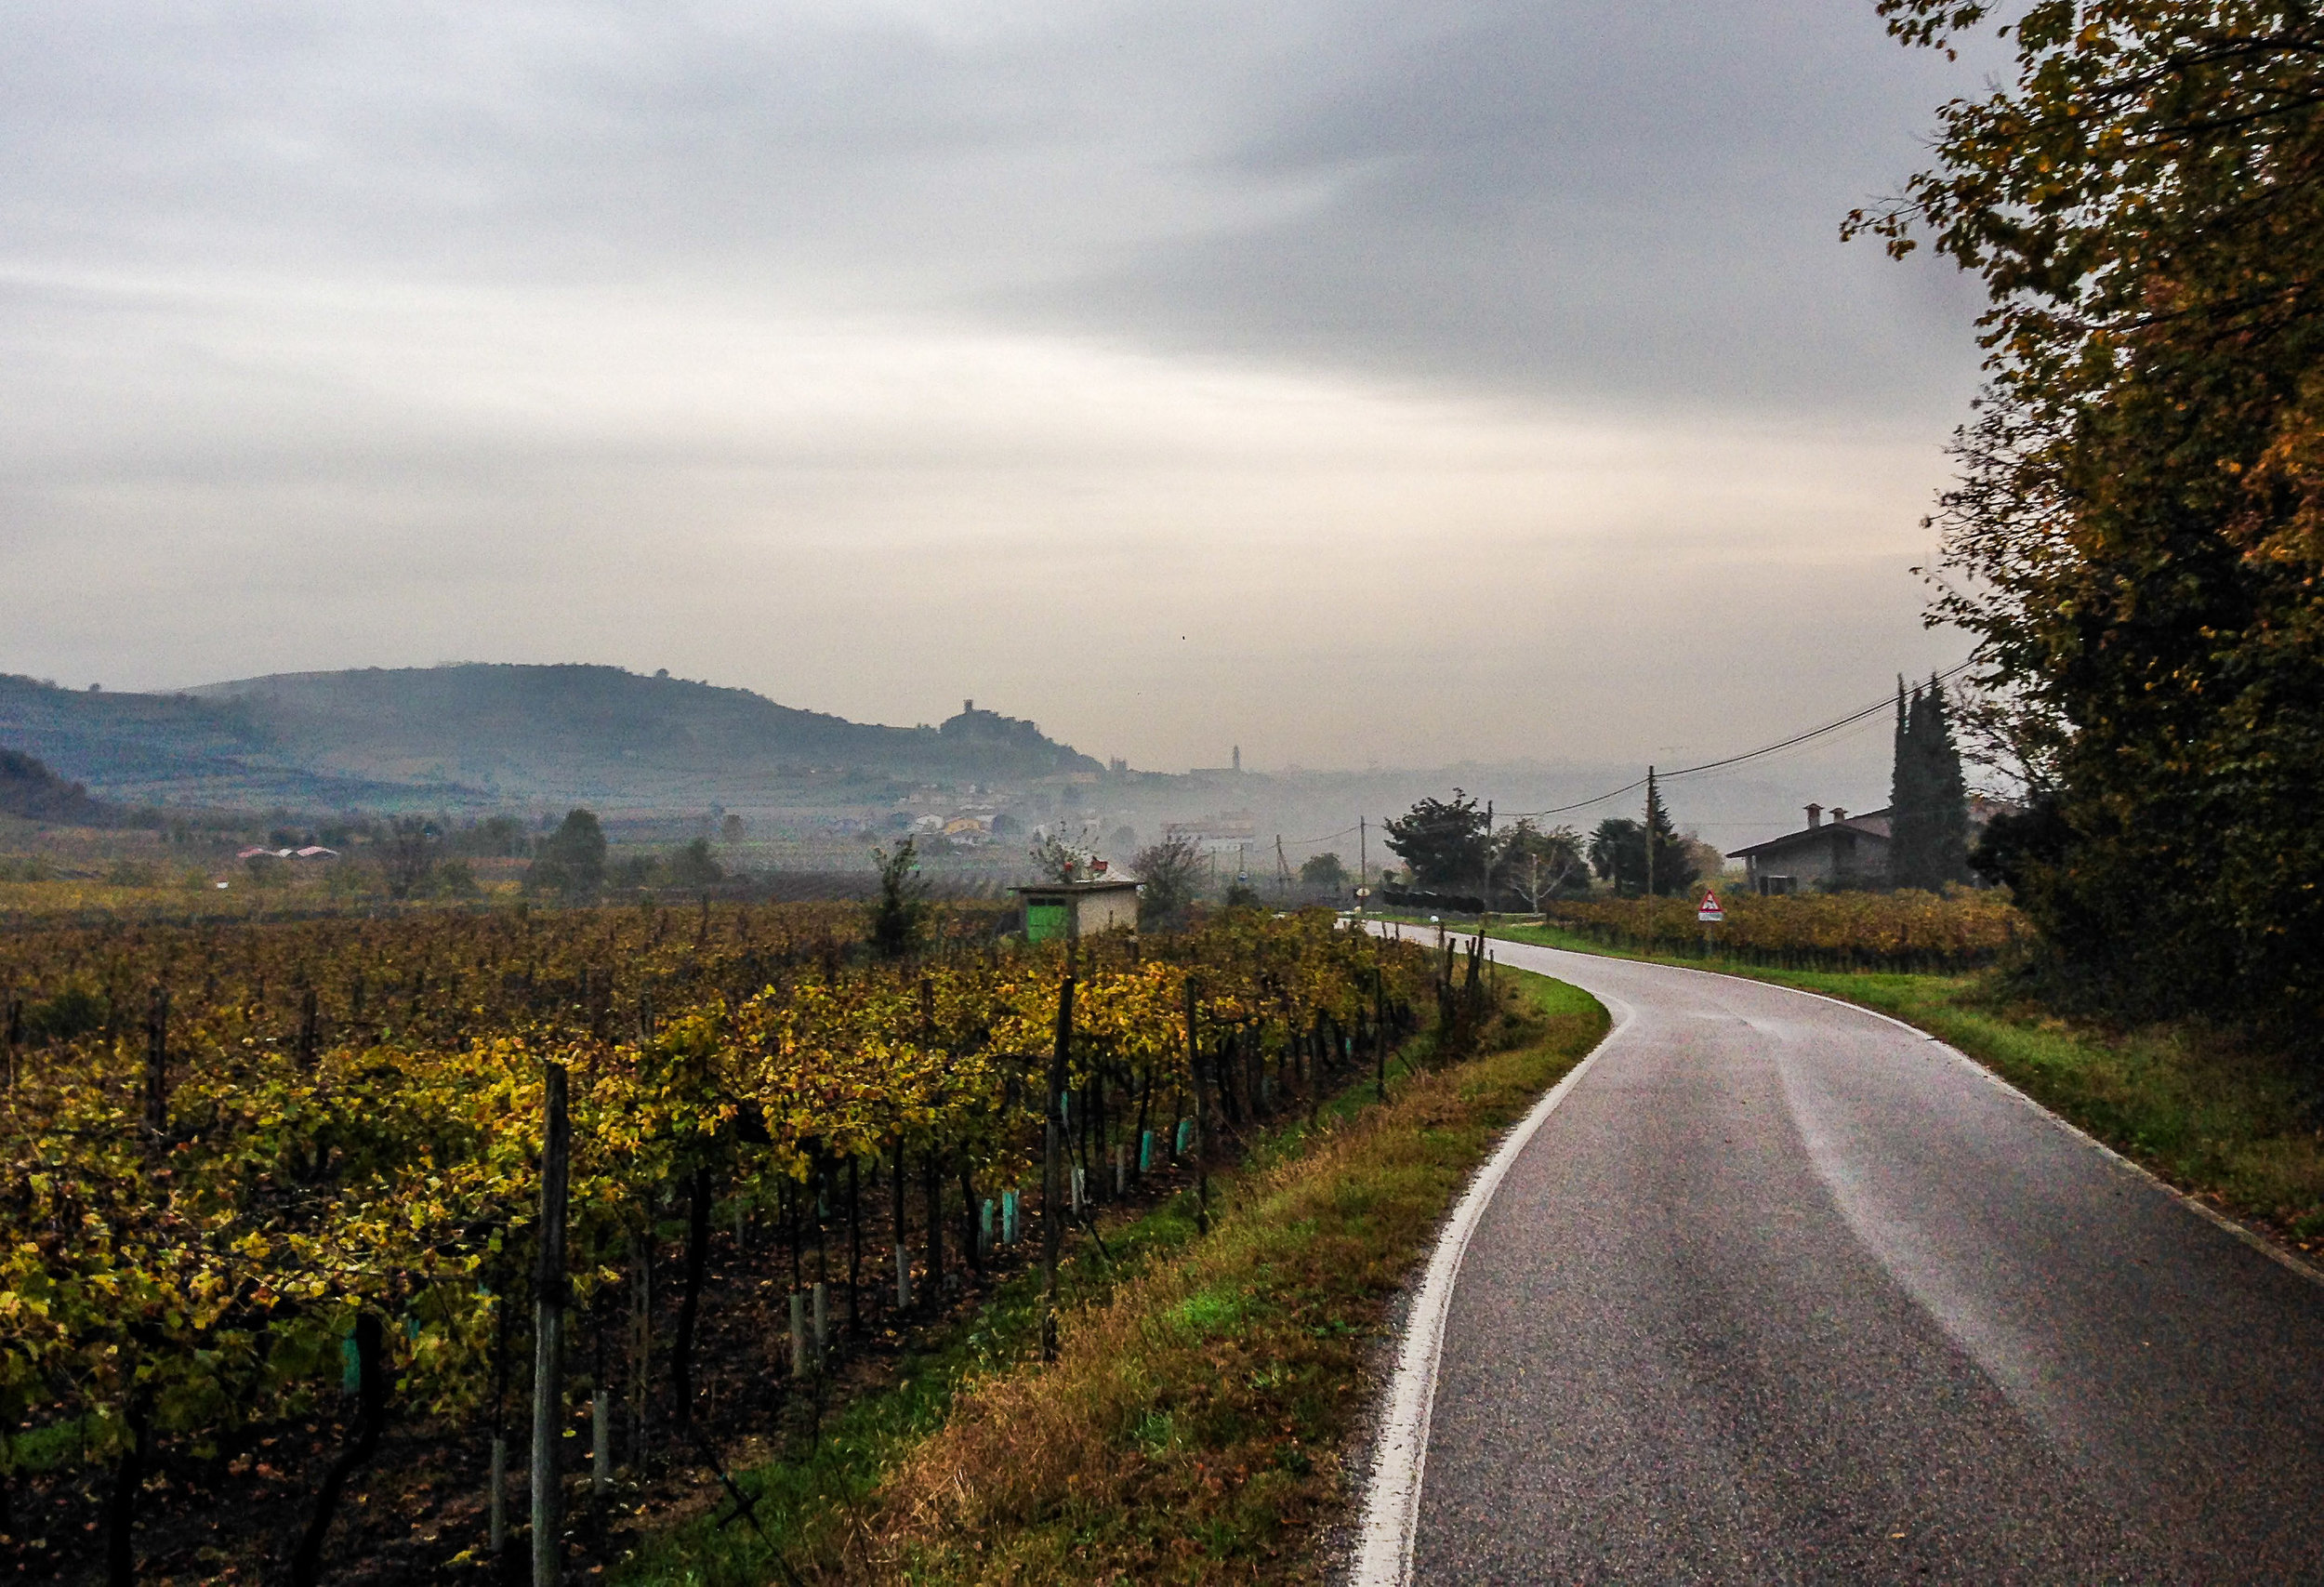 Road to Soave |  ©John Szabo (published by Jacqui Small)